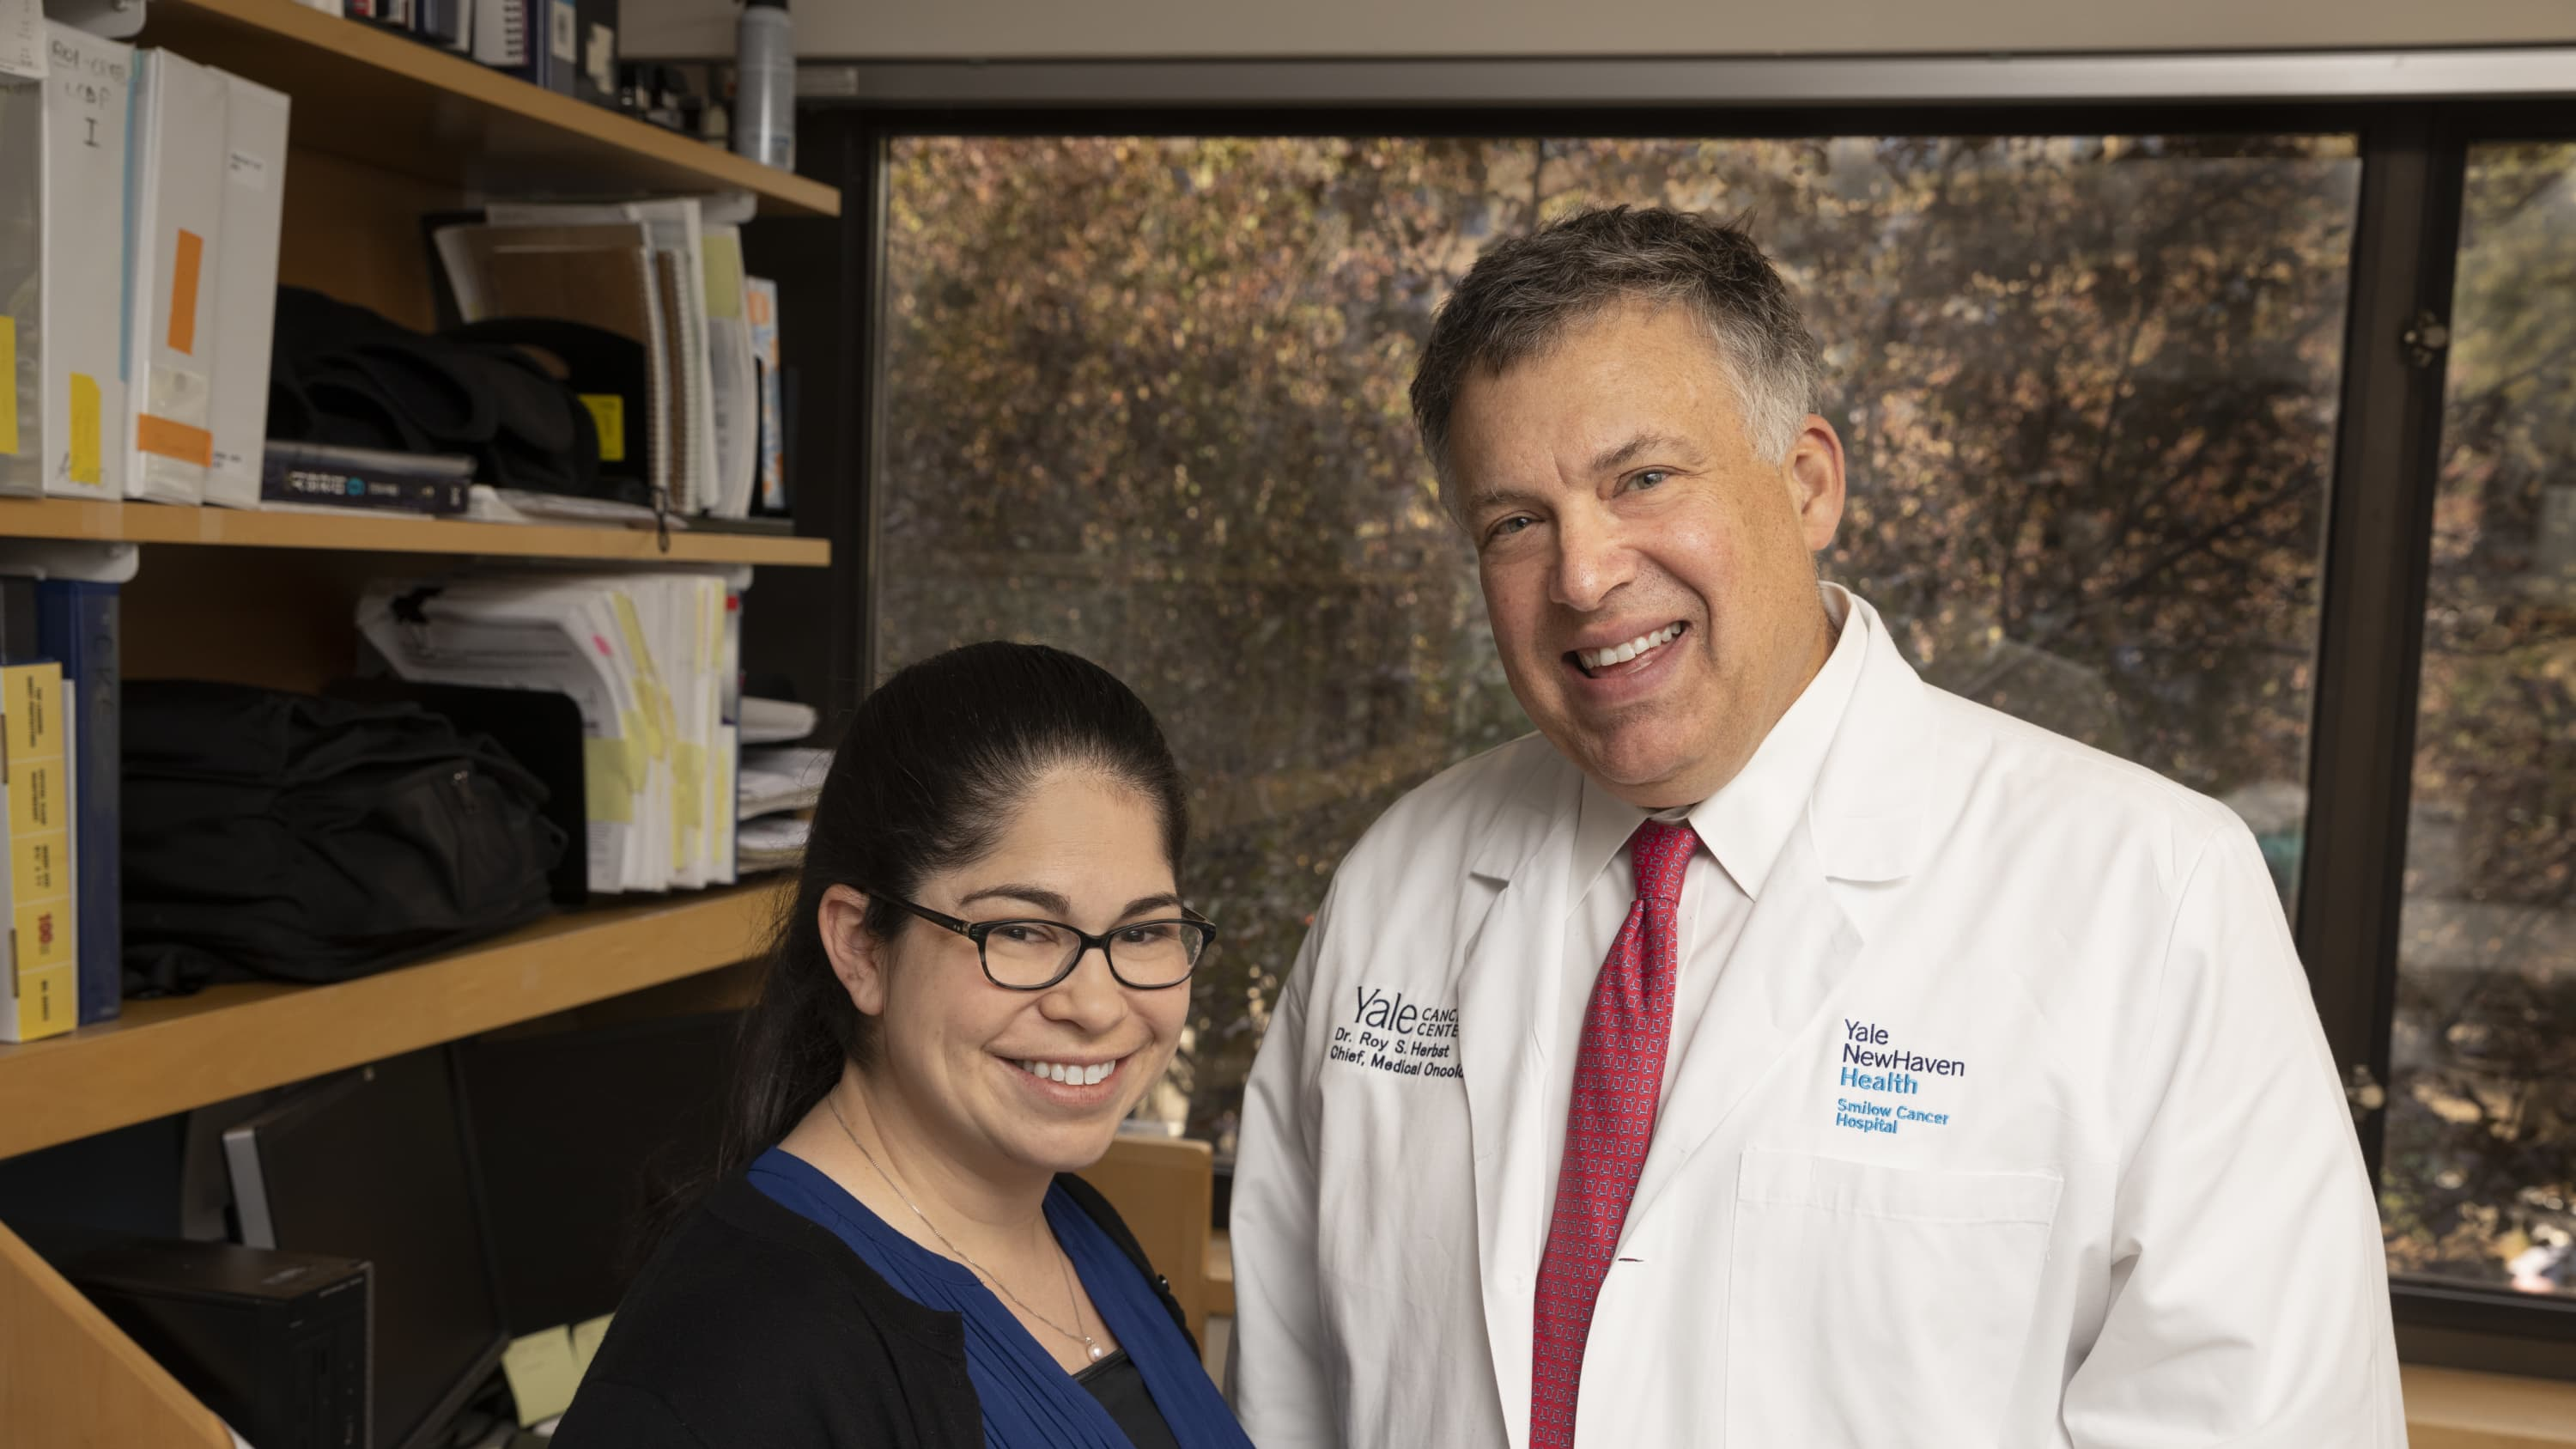 Dr. Herbst with Dr. Doroshow discussing immunotherapy for NSCLC